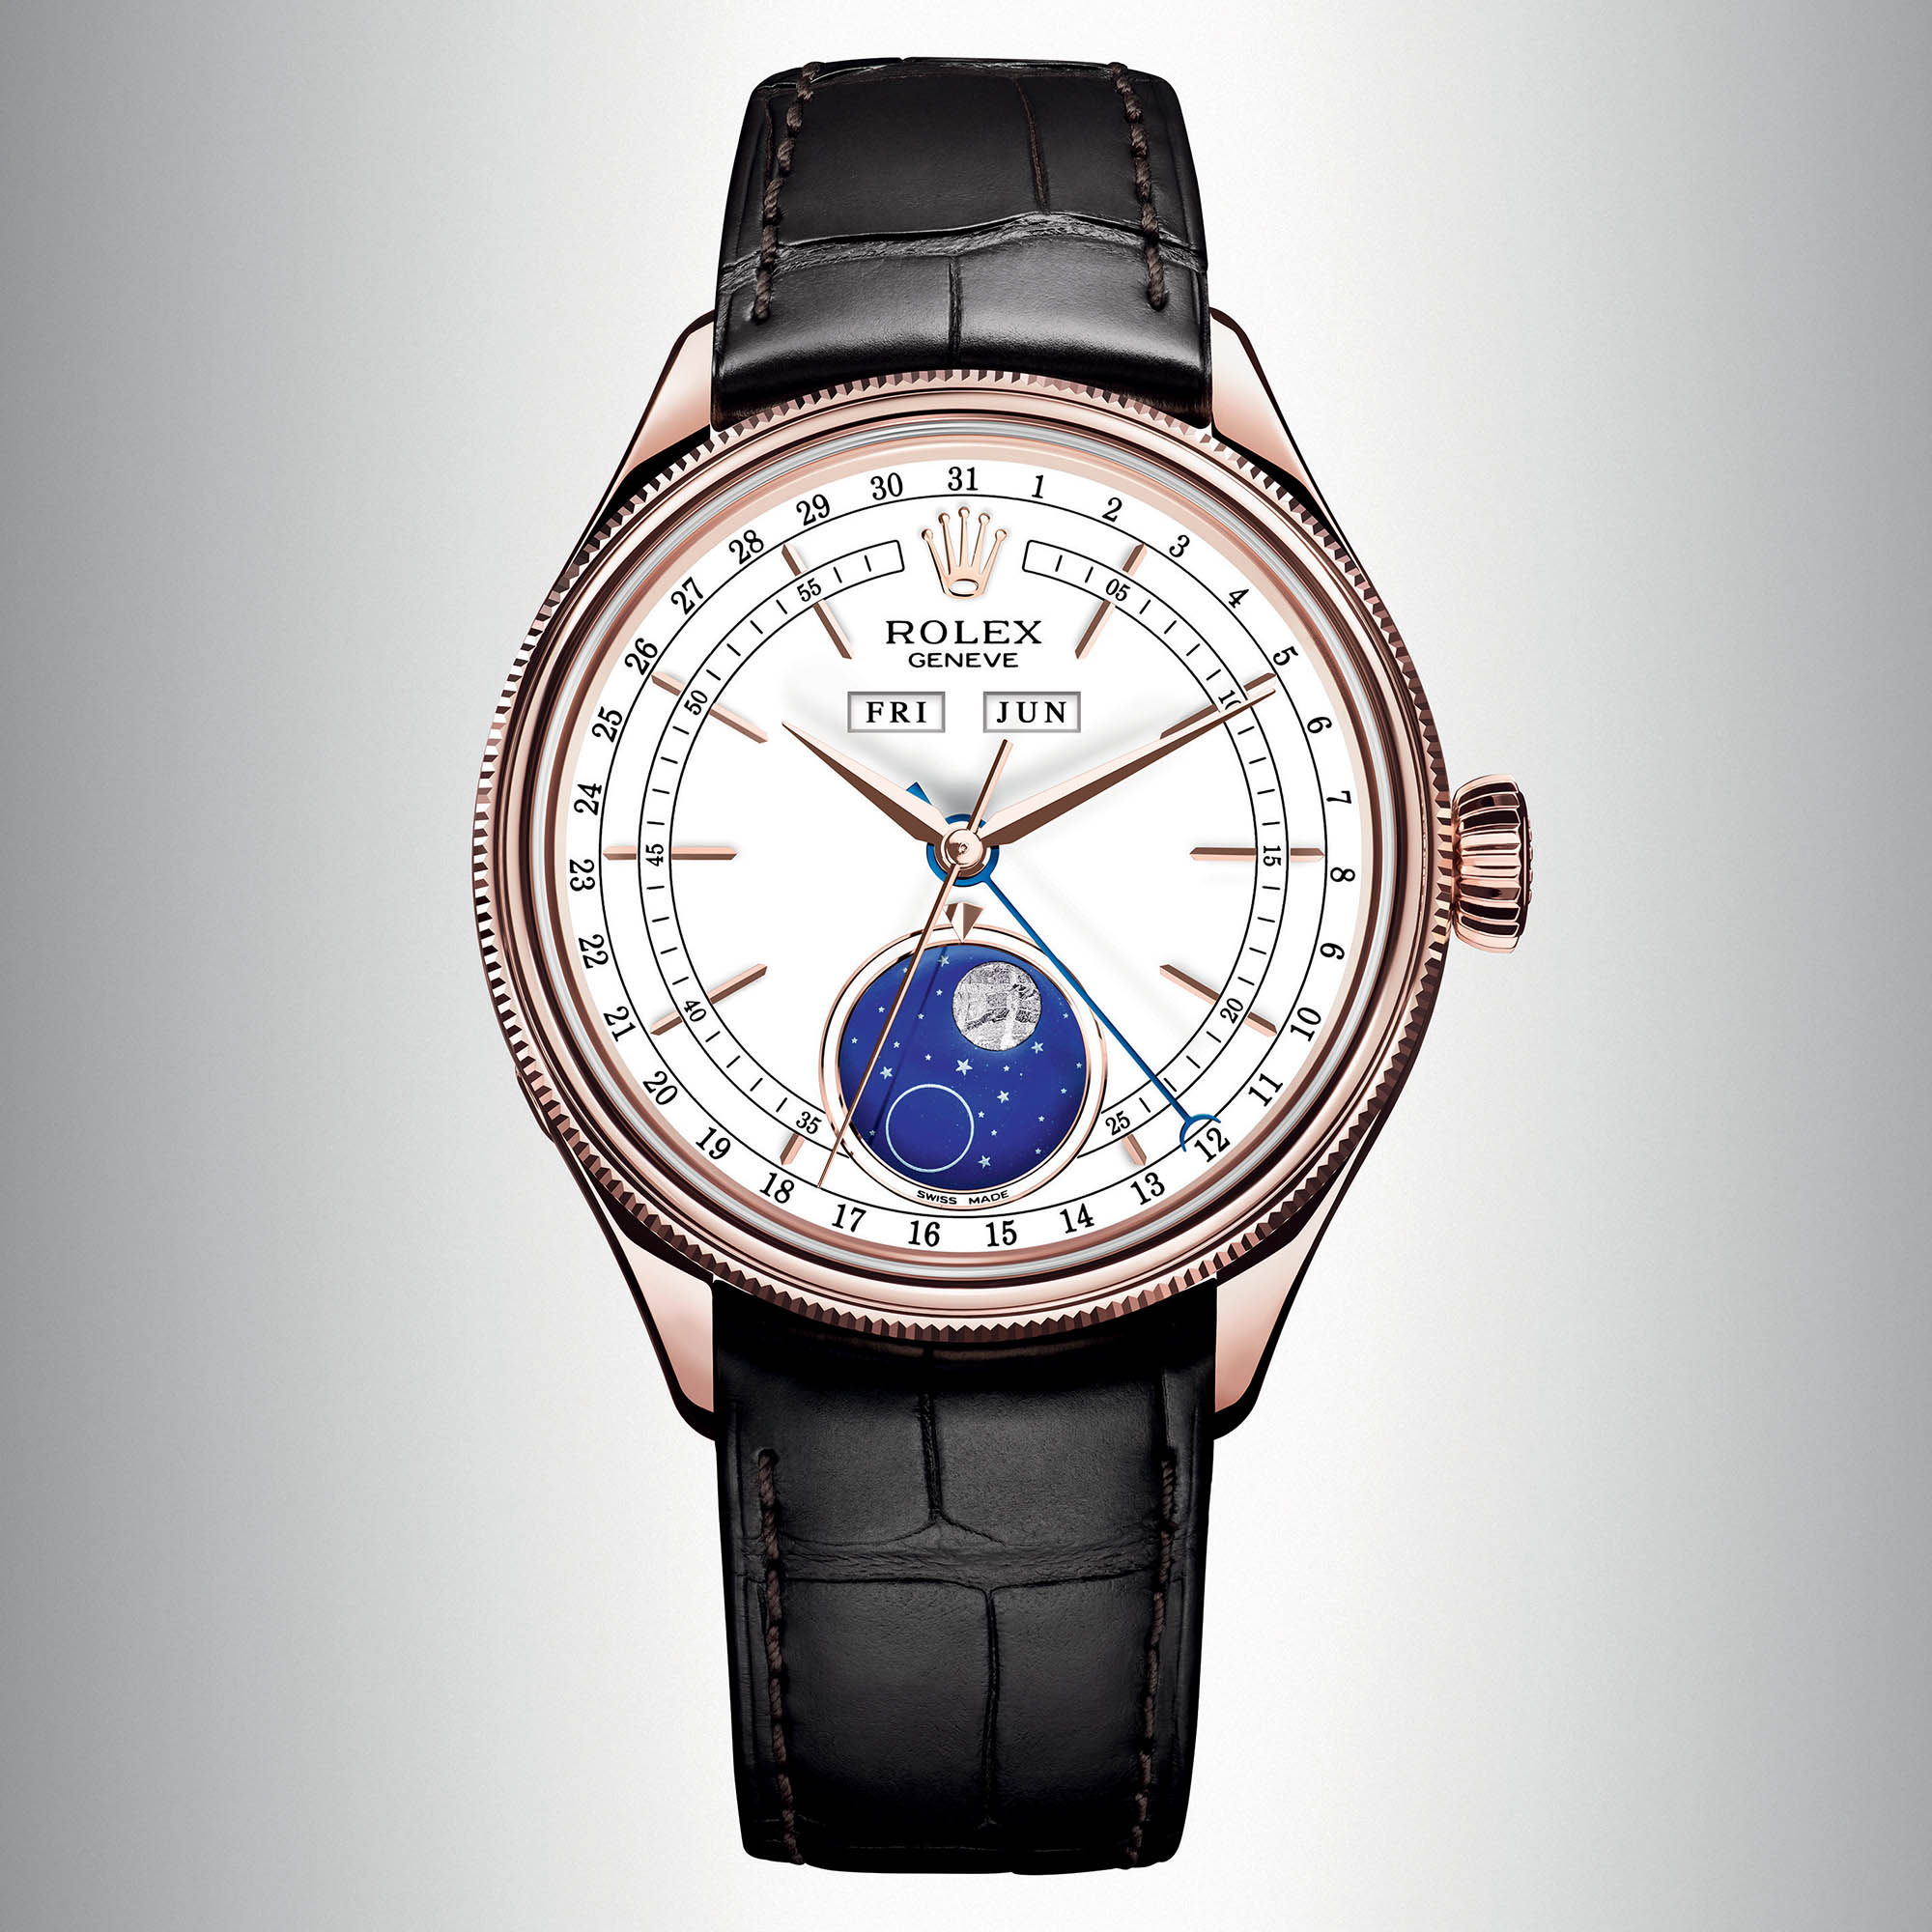 Rolex Cellini Triple Calendar Moonphase - Rolex Baselworld 2018 - Rolex Predictions 2018